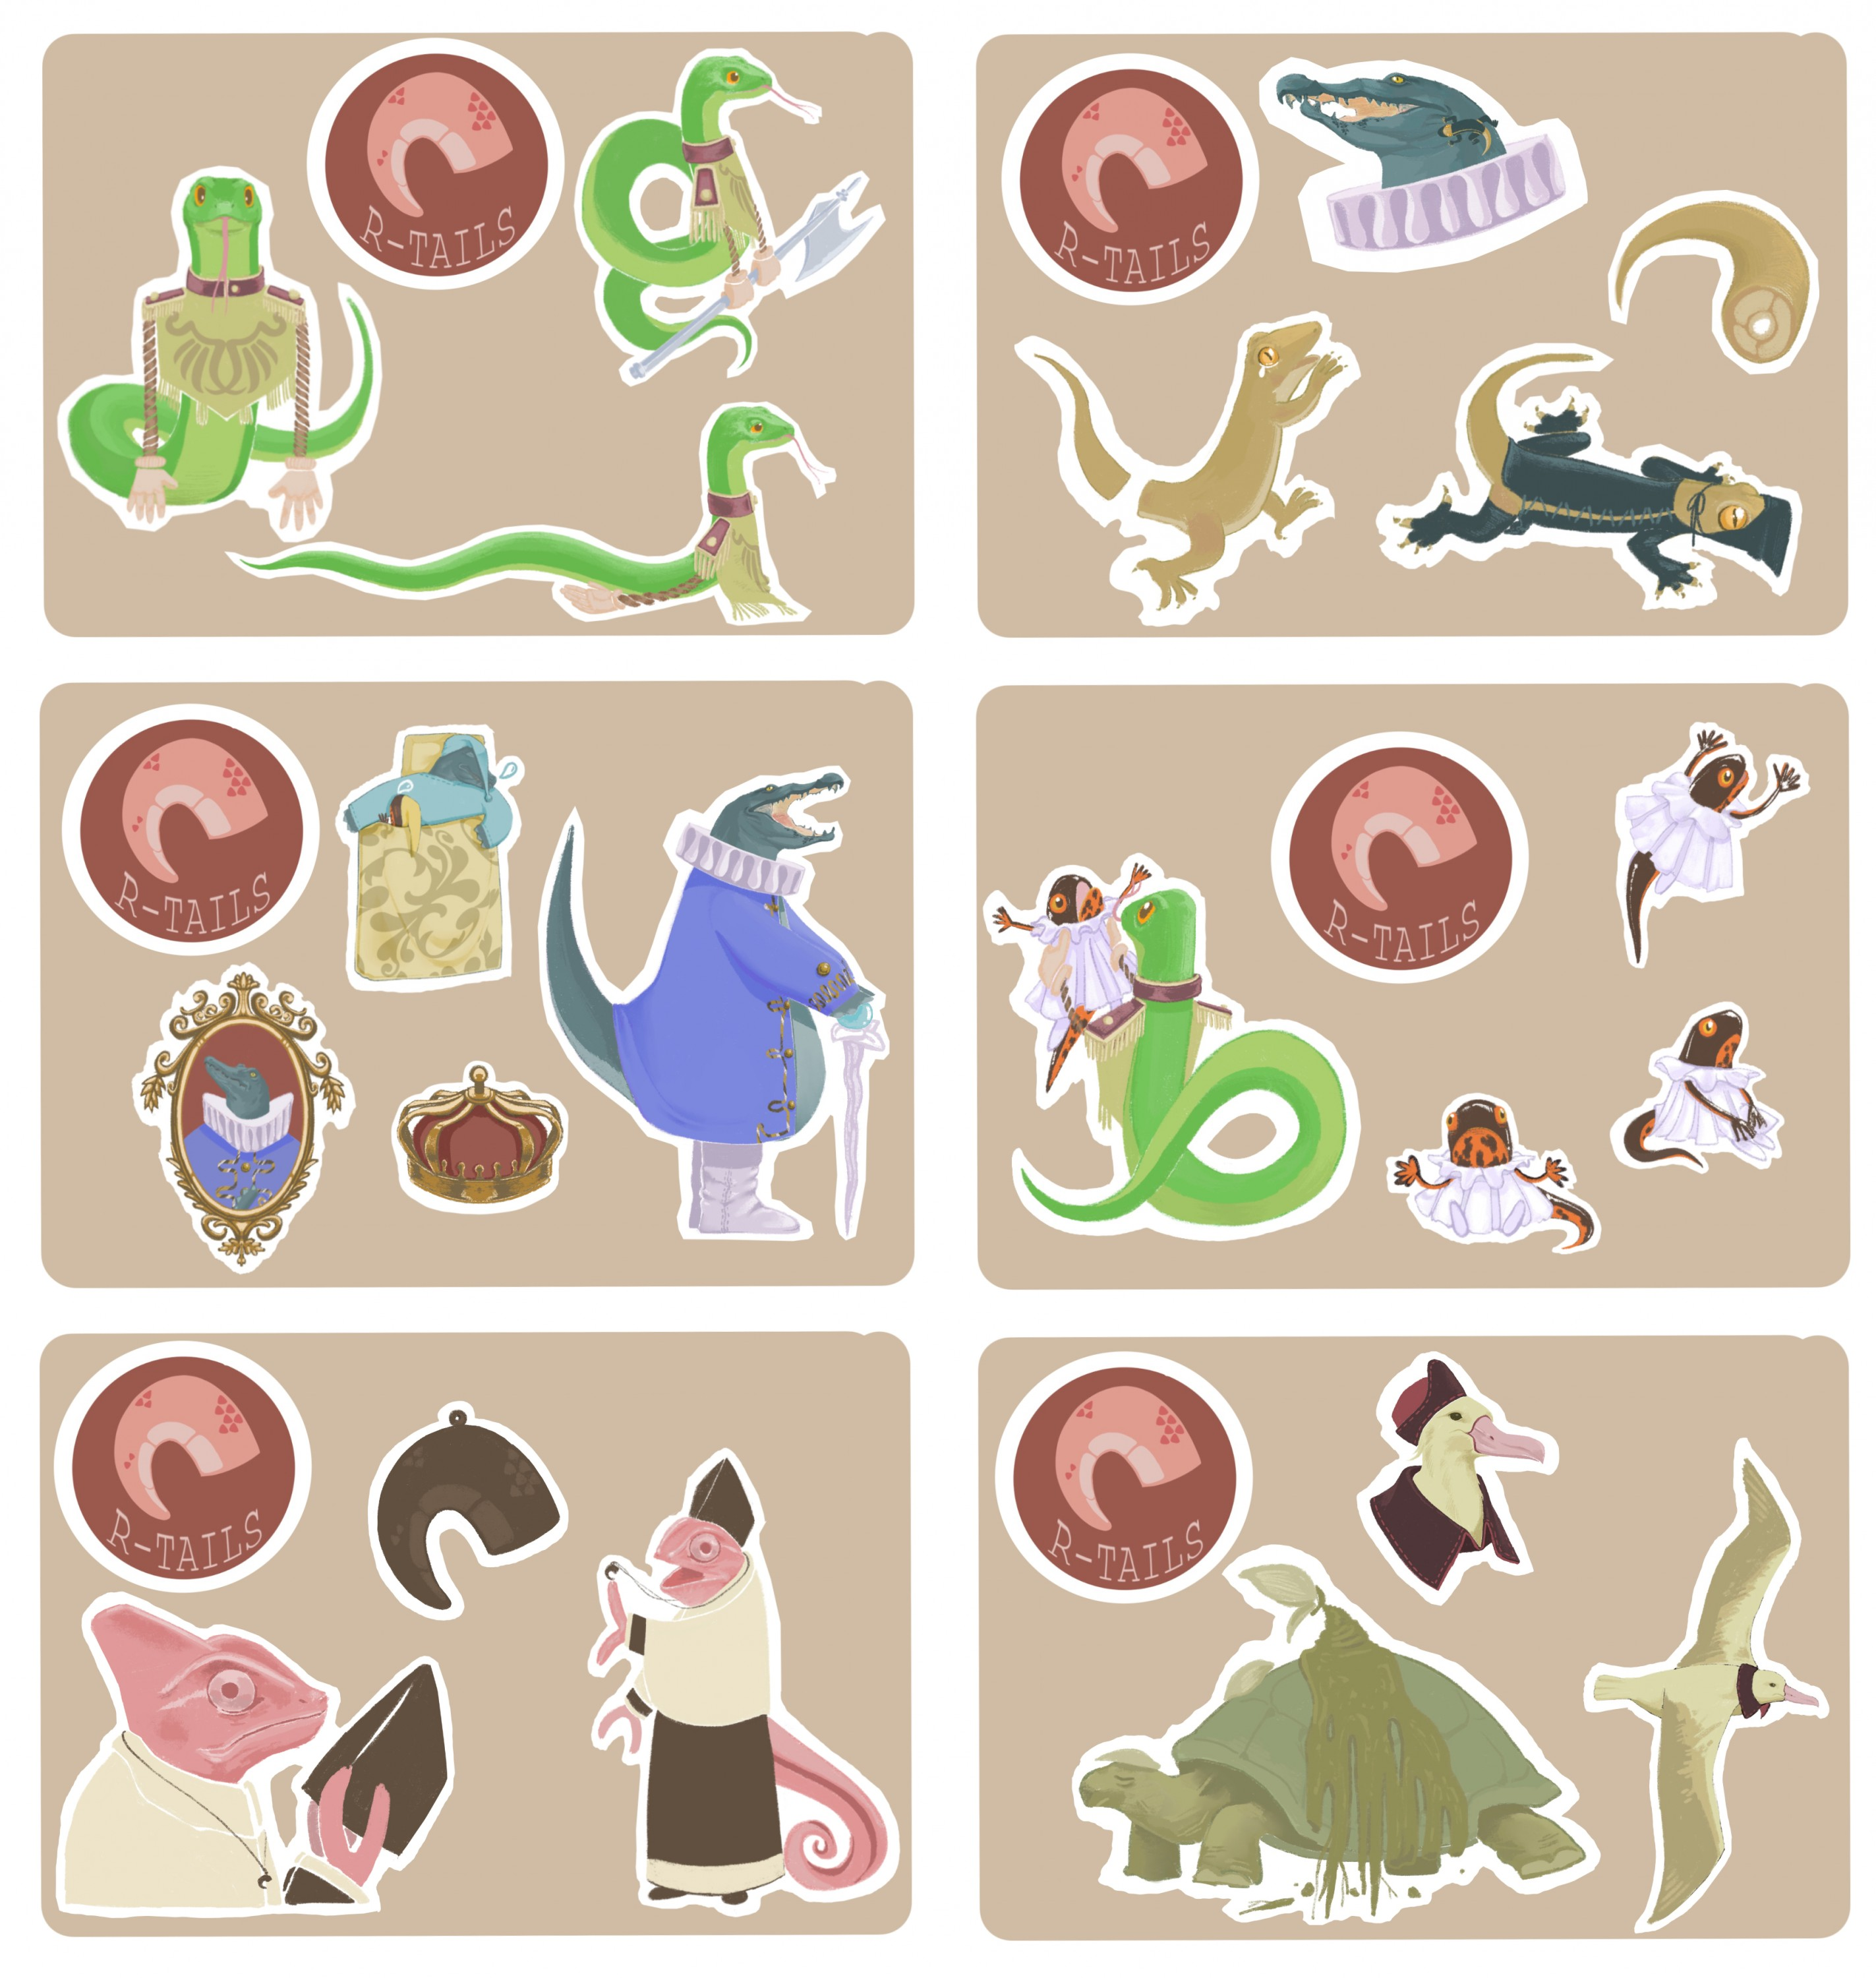 All the character designs are integrated into the form of stickers.